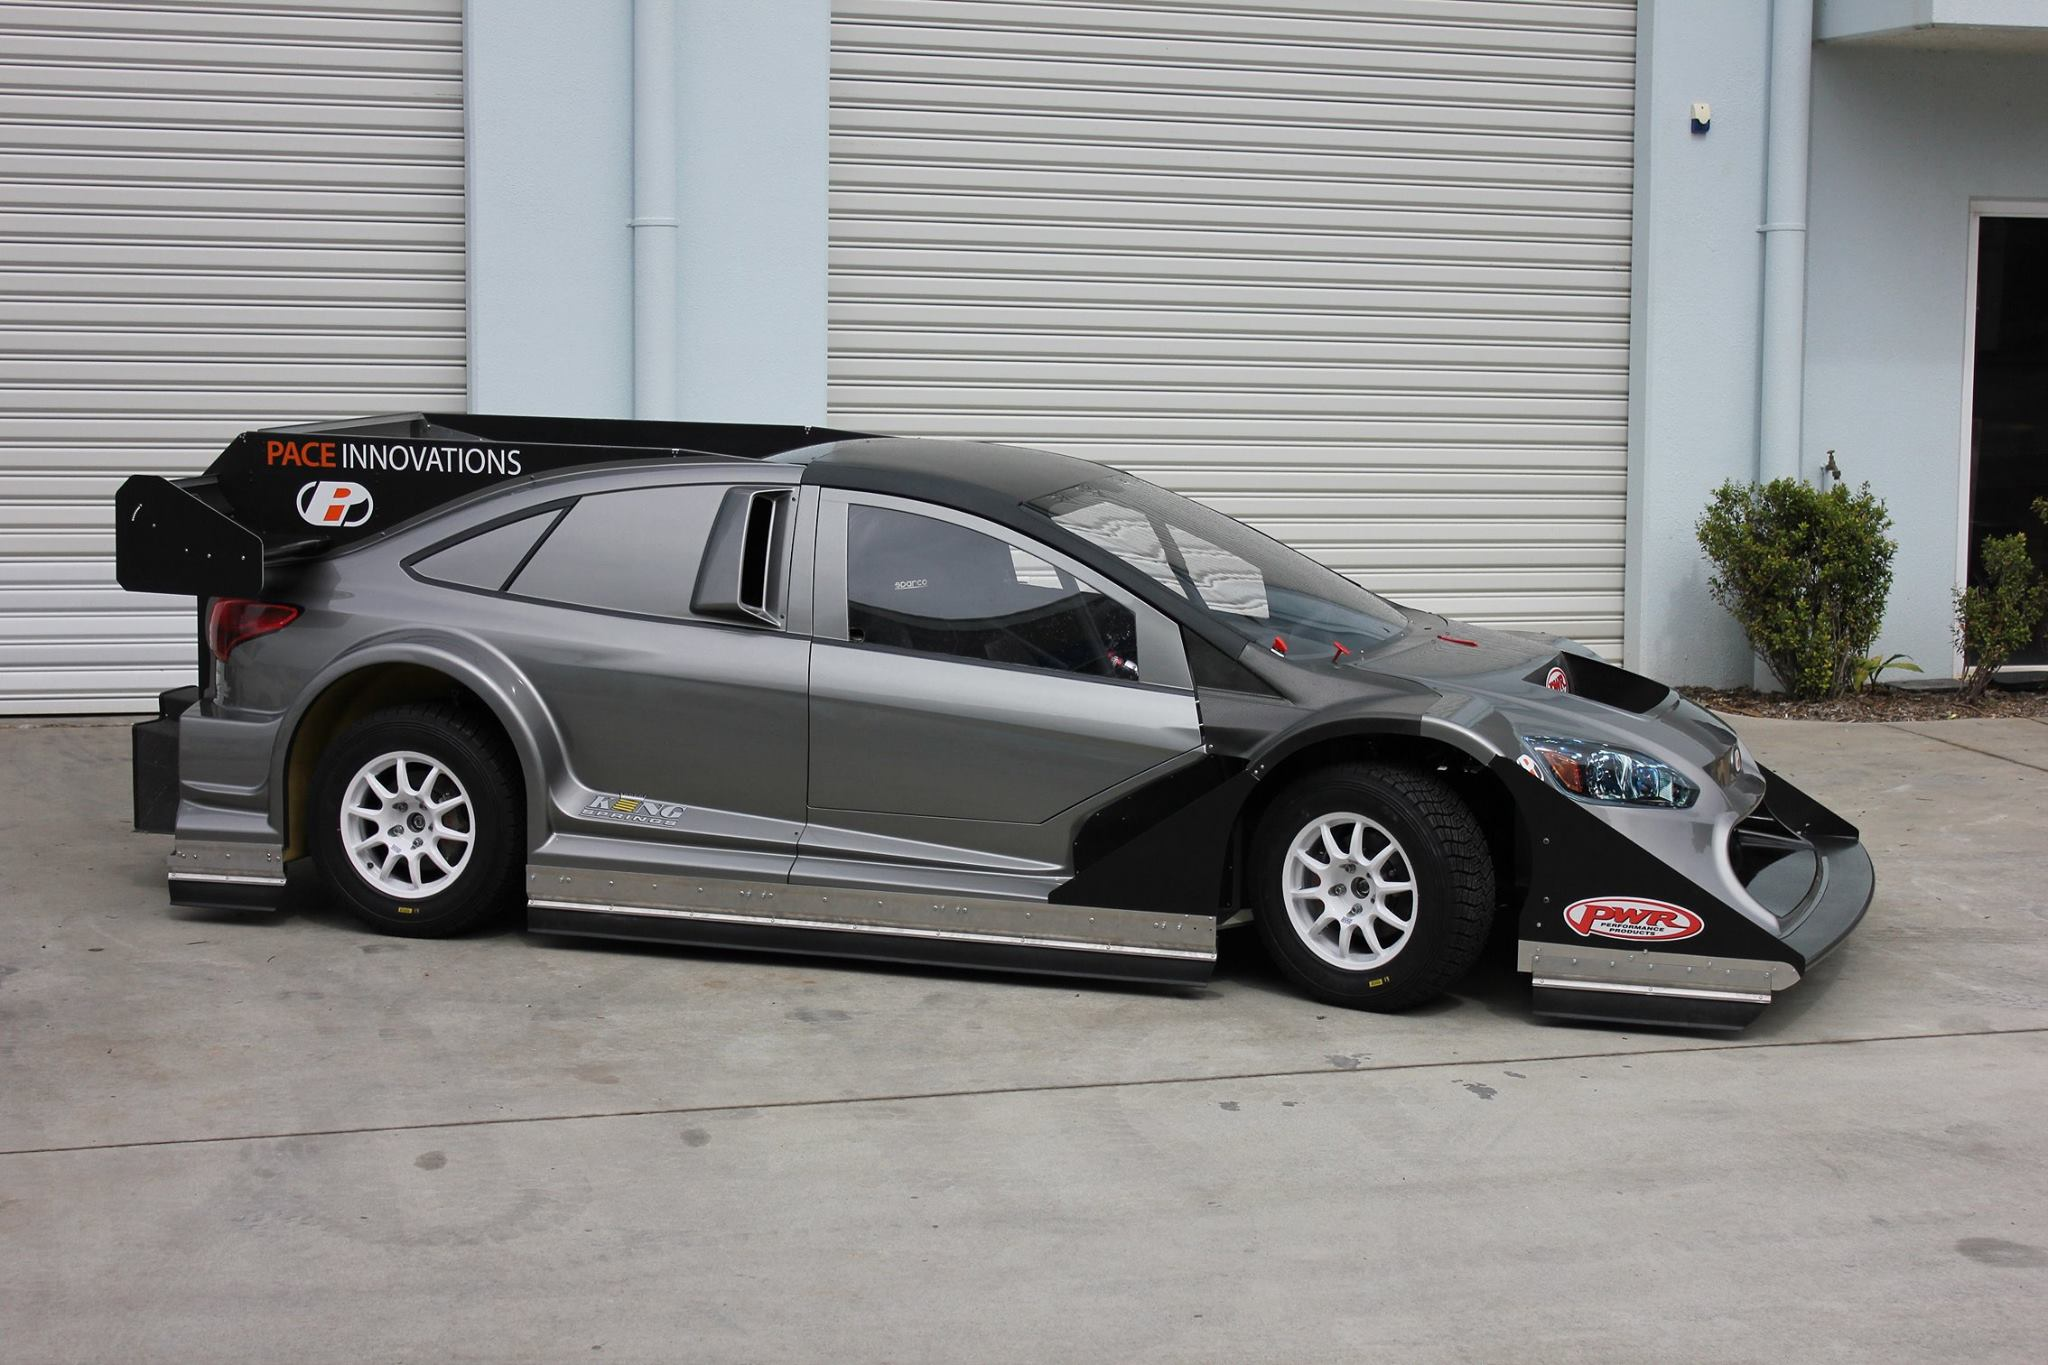 Bespoke Ford Focus With A Vr38dett